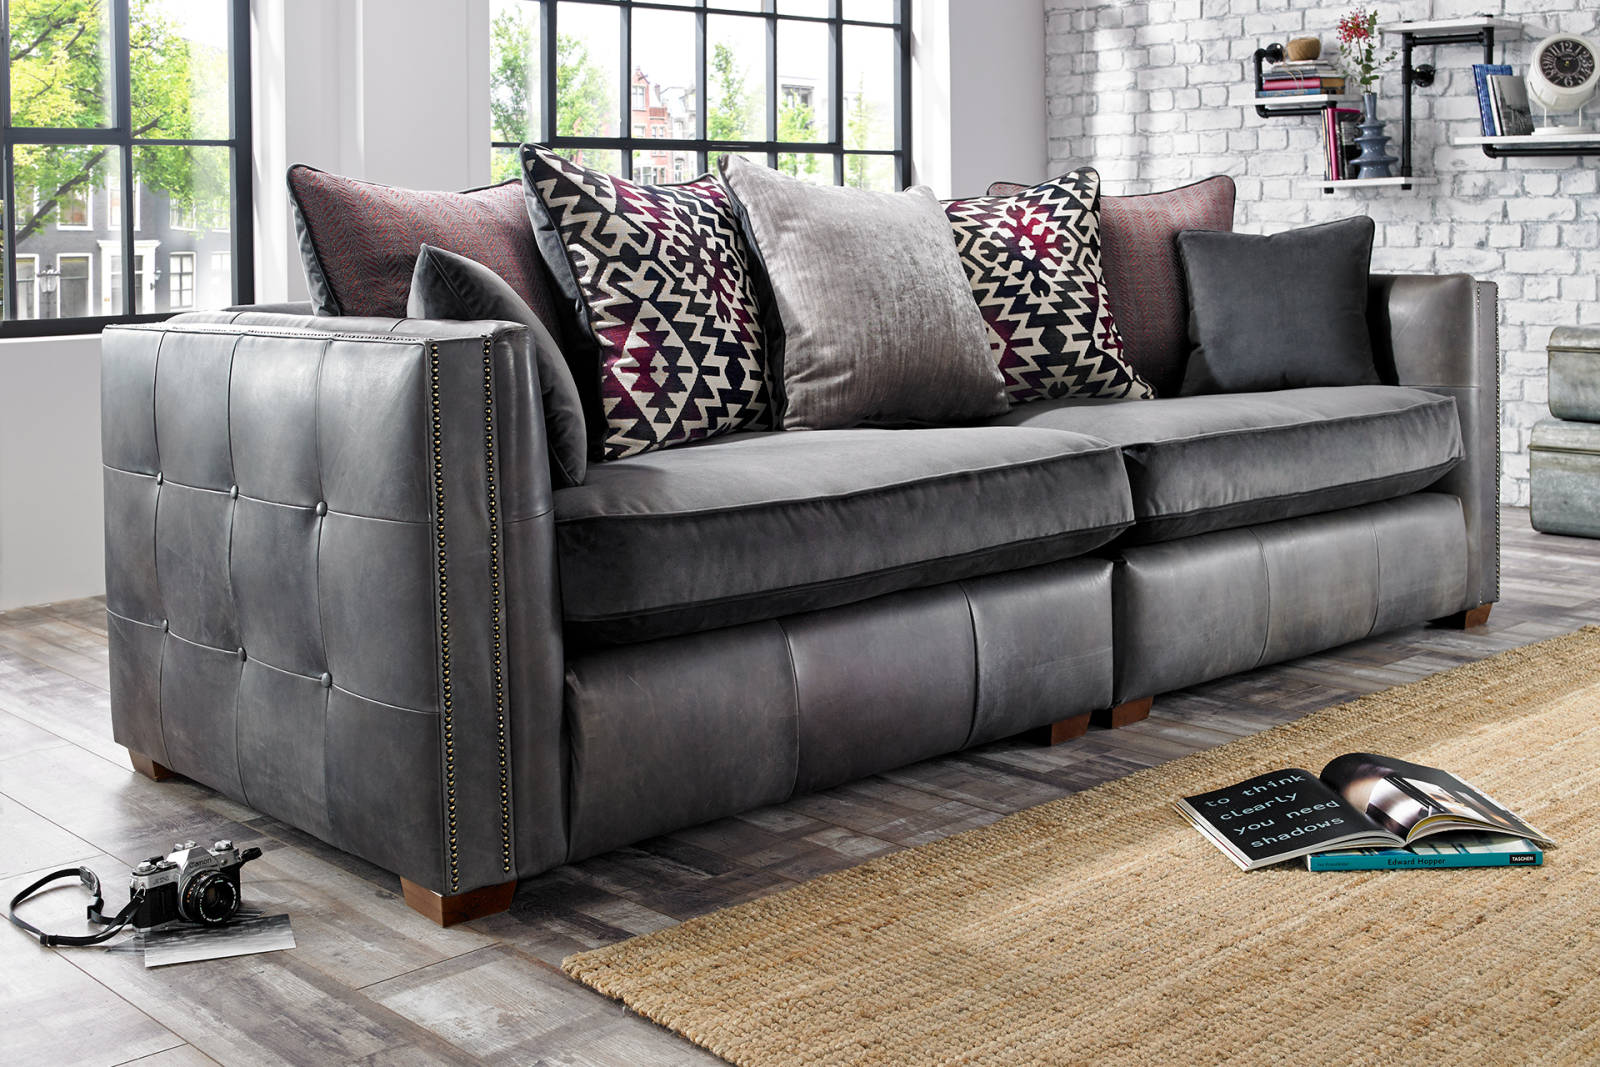 100 fulham leather sofa the fulham faux leather bed frame m